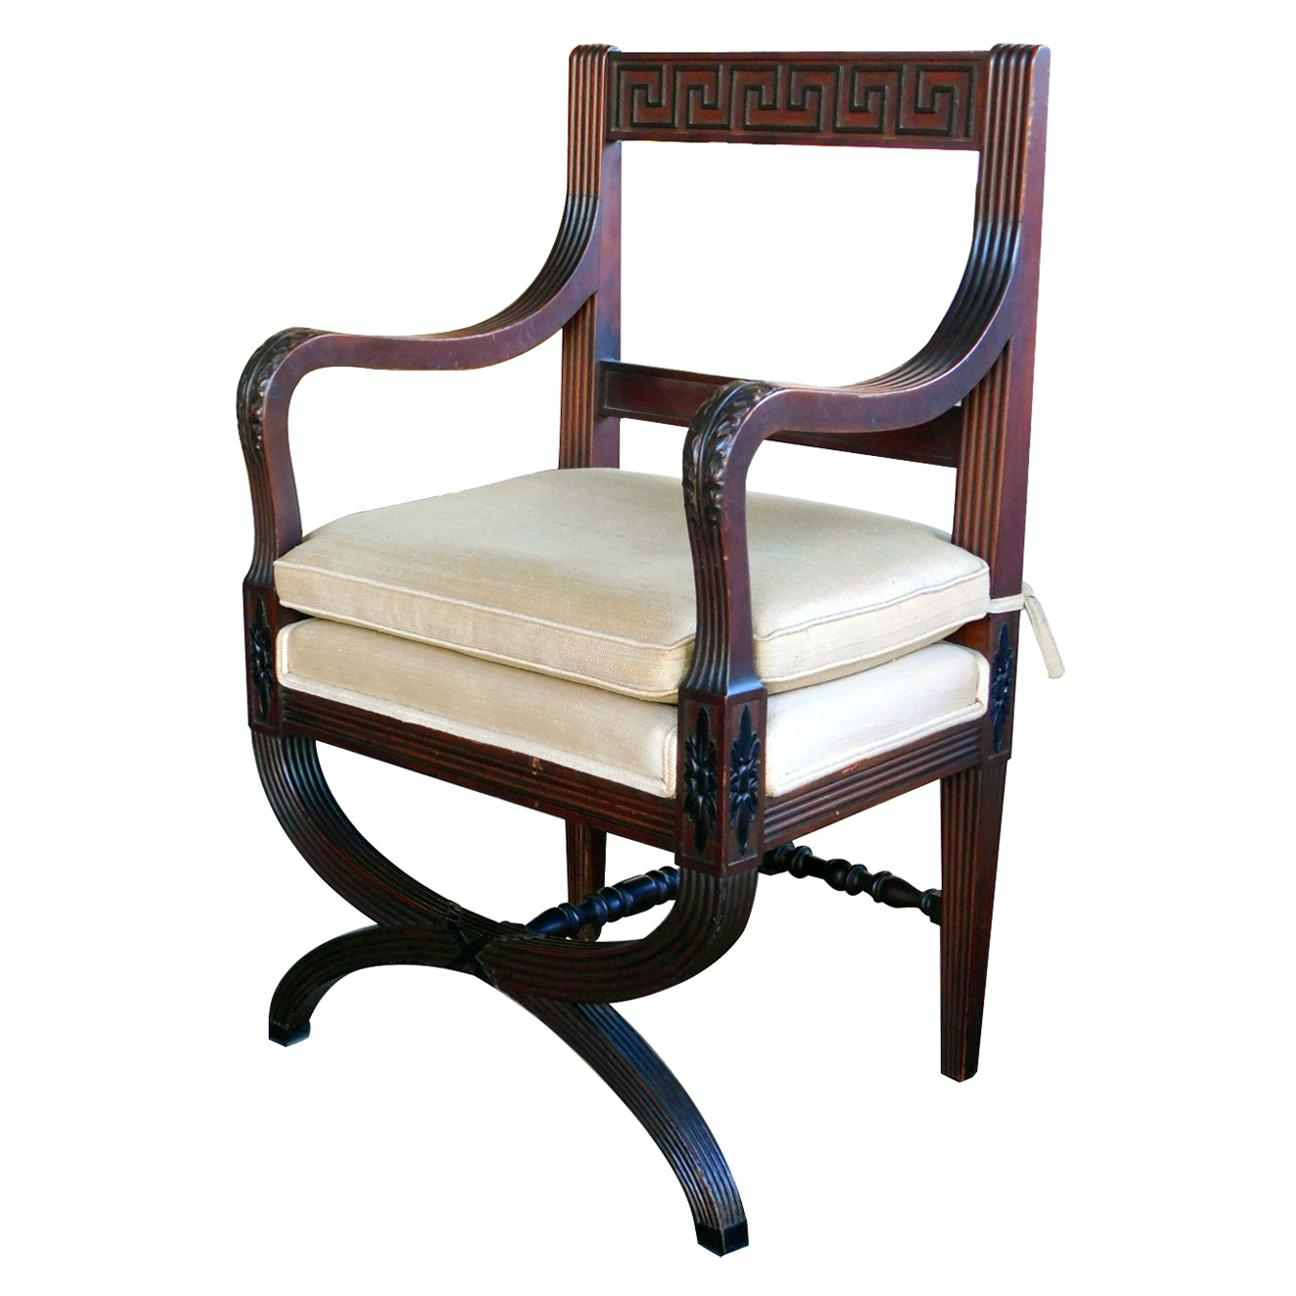 English Regency Style Curule-Form Armchair with Greek Key Relief